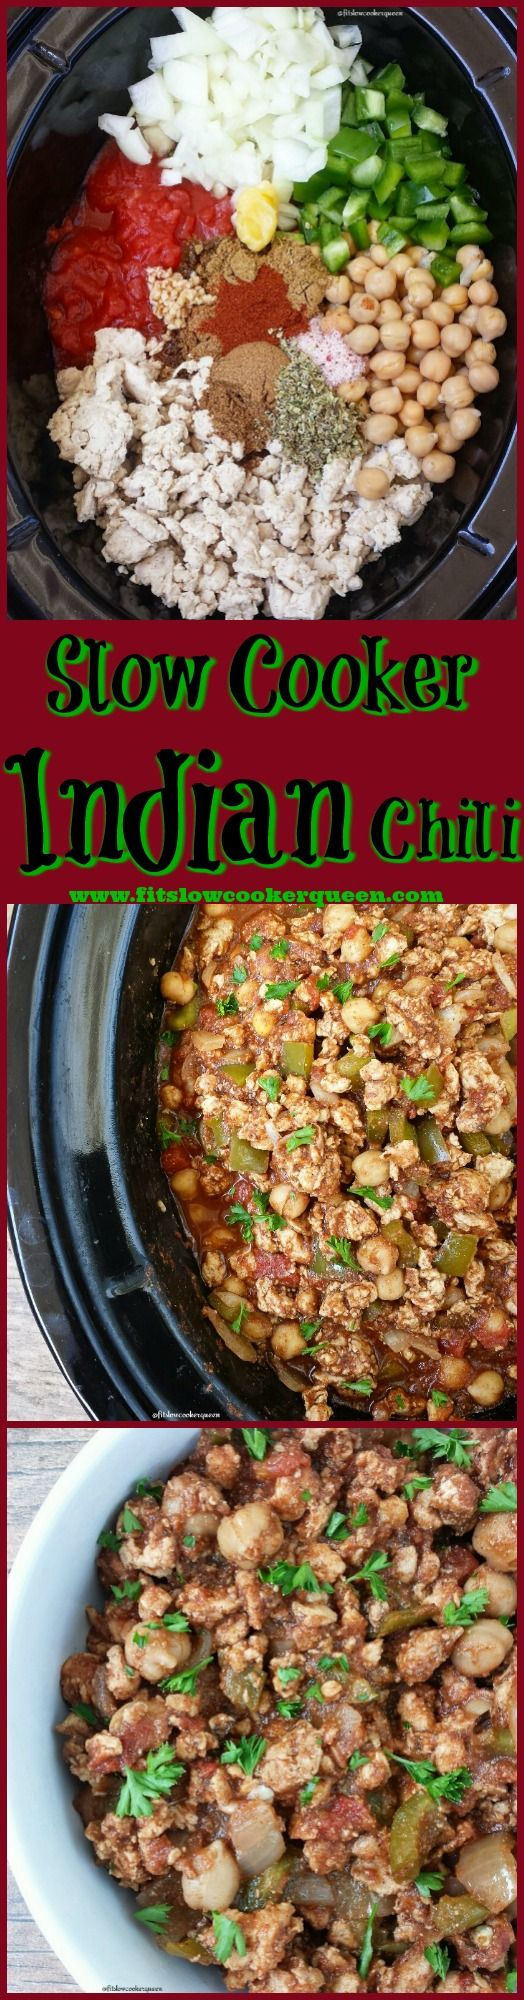 Slow Cooker / Crockpot - This Indian chili recipe uses traditional Indian spices and ingredients for a unique and twist on a traditional slow cooker classic.